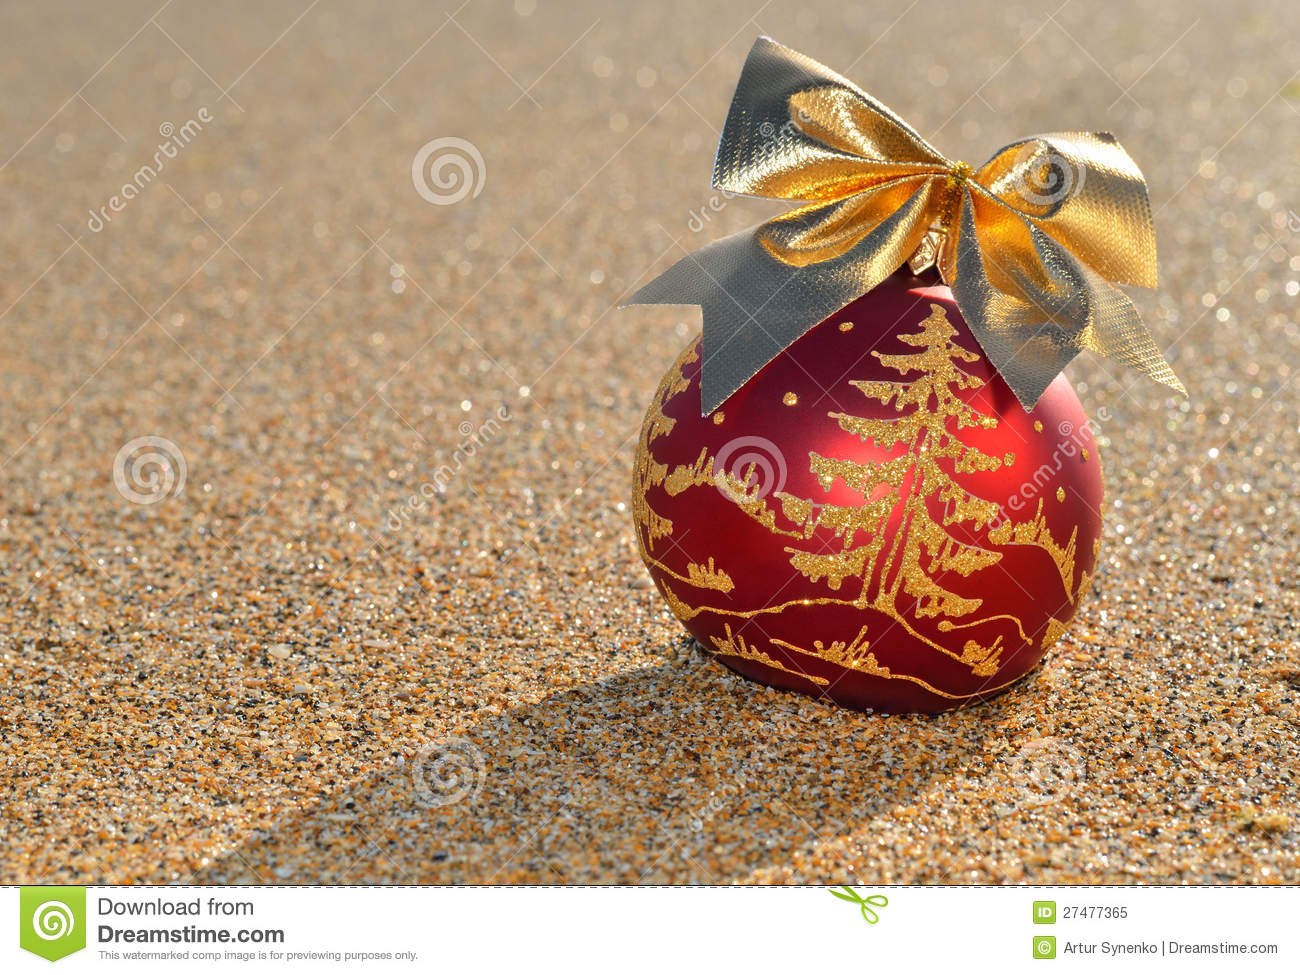 Decoration De Noel Sur Un Sable De Plage Image Stock Image Du